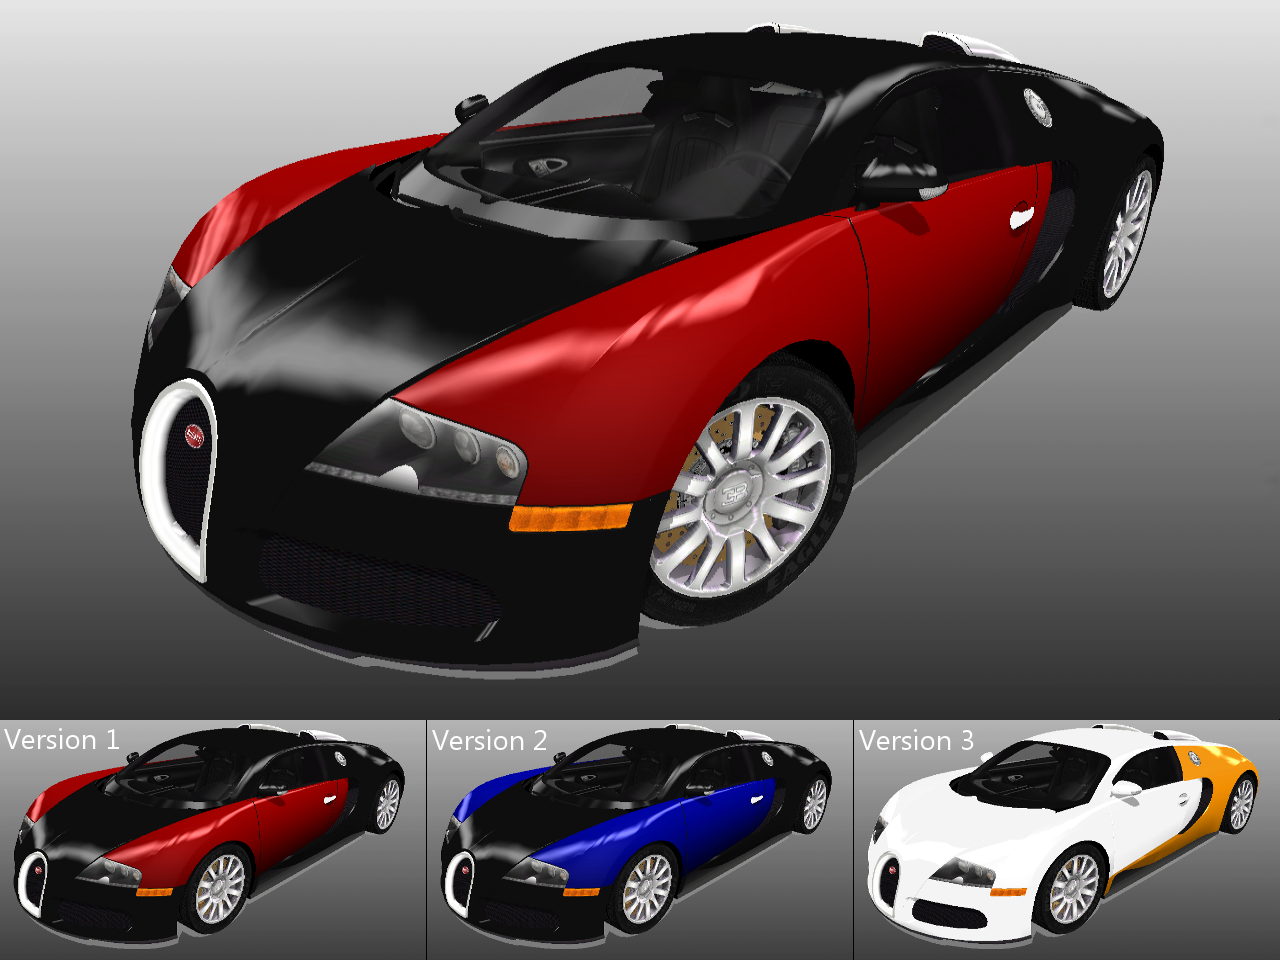 Bugatti veyron download by sirknightthomas on deviantart bugatti veyron download by sirknightthomas bugatti veyron download by sirknightthomas voltagebd Image collections